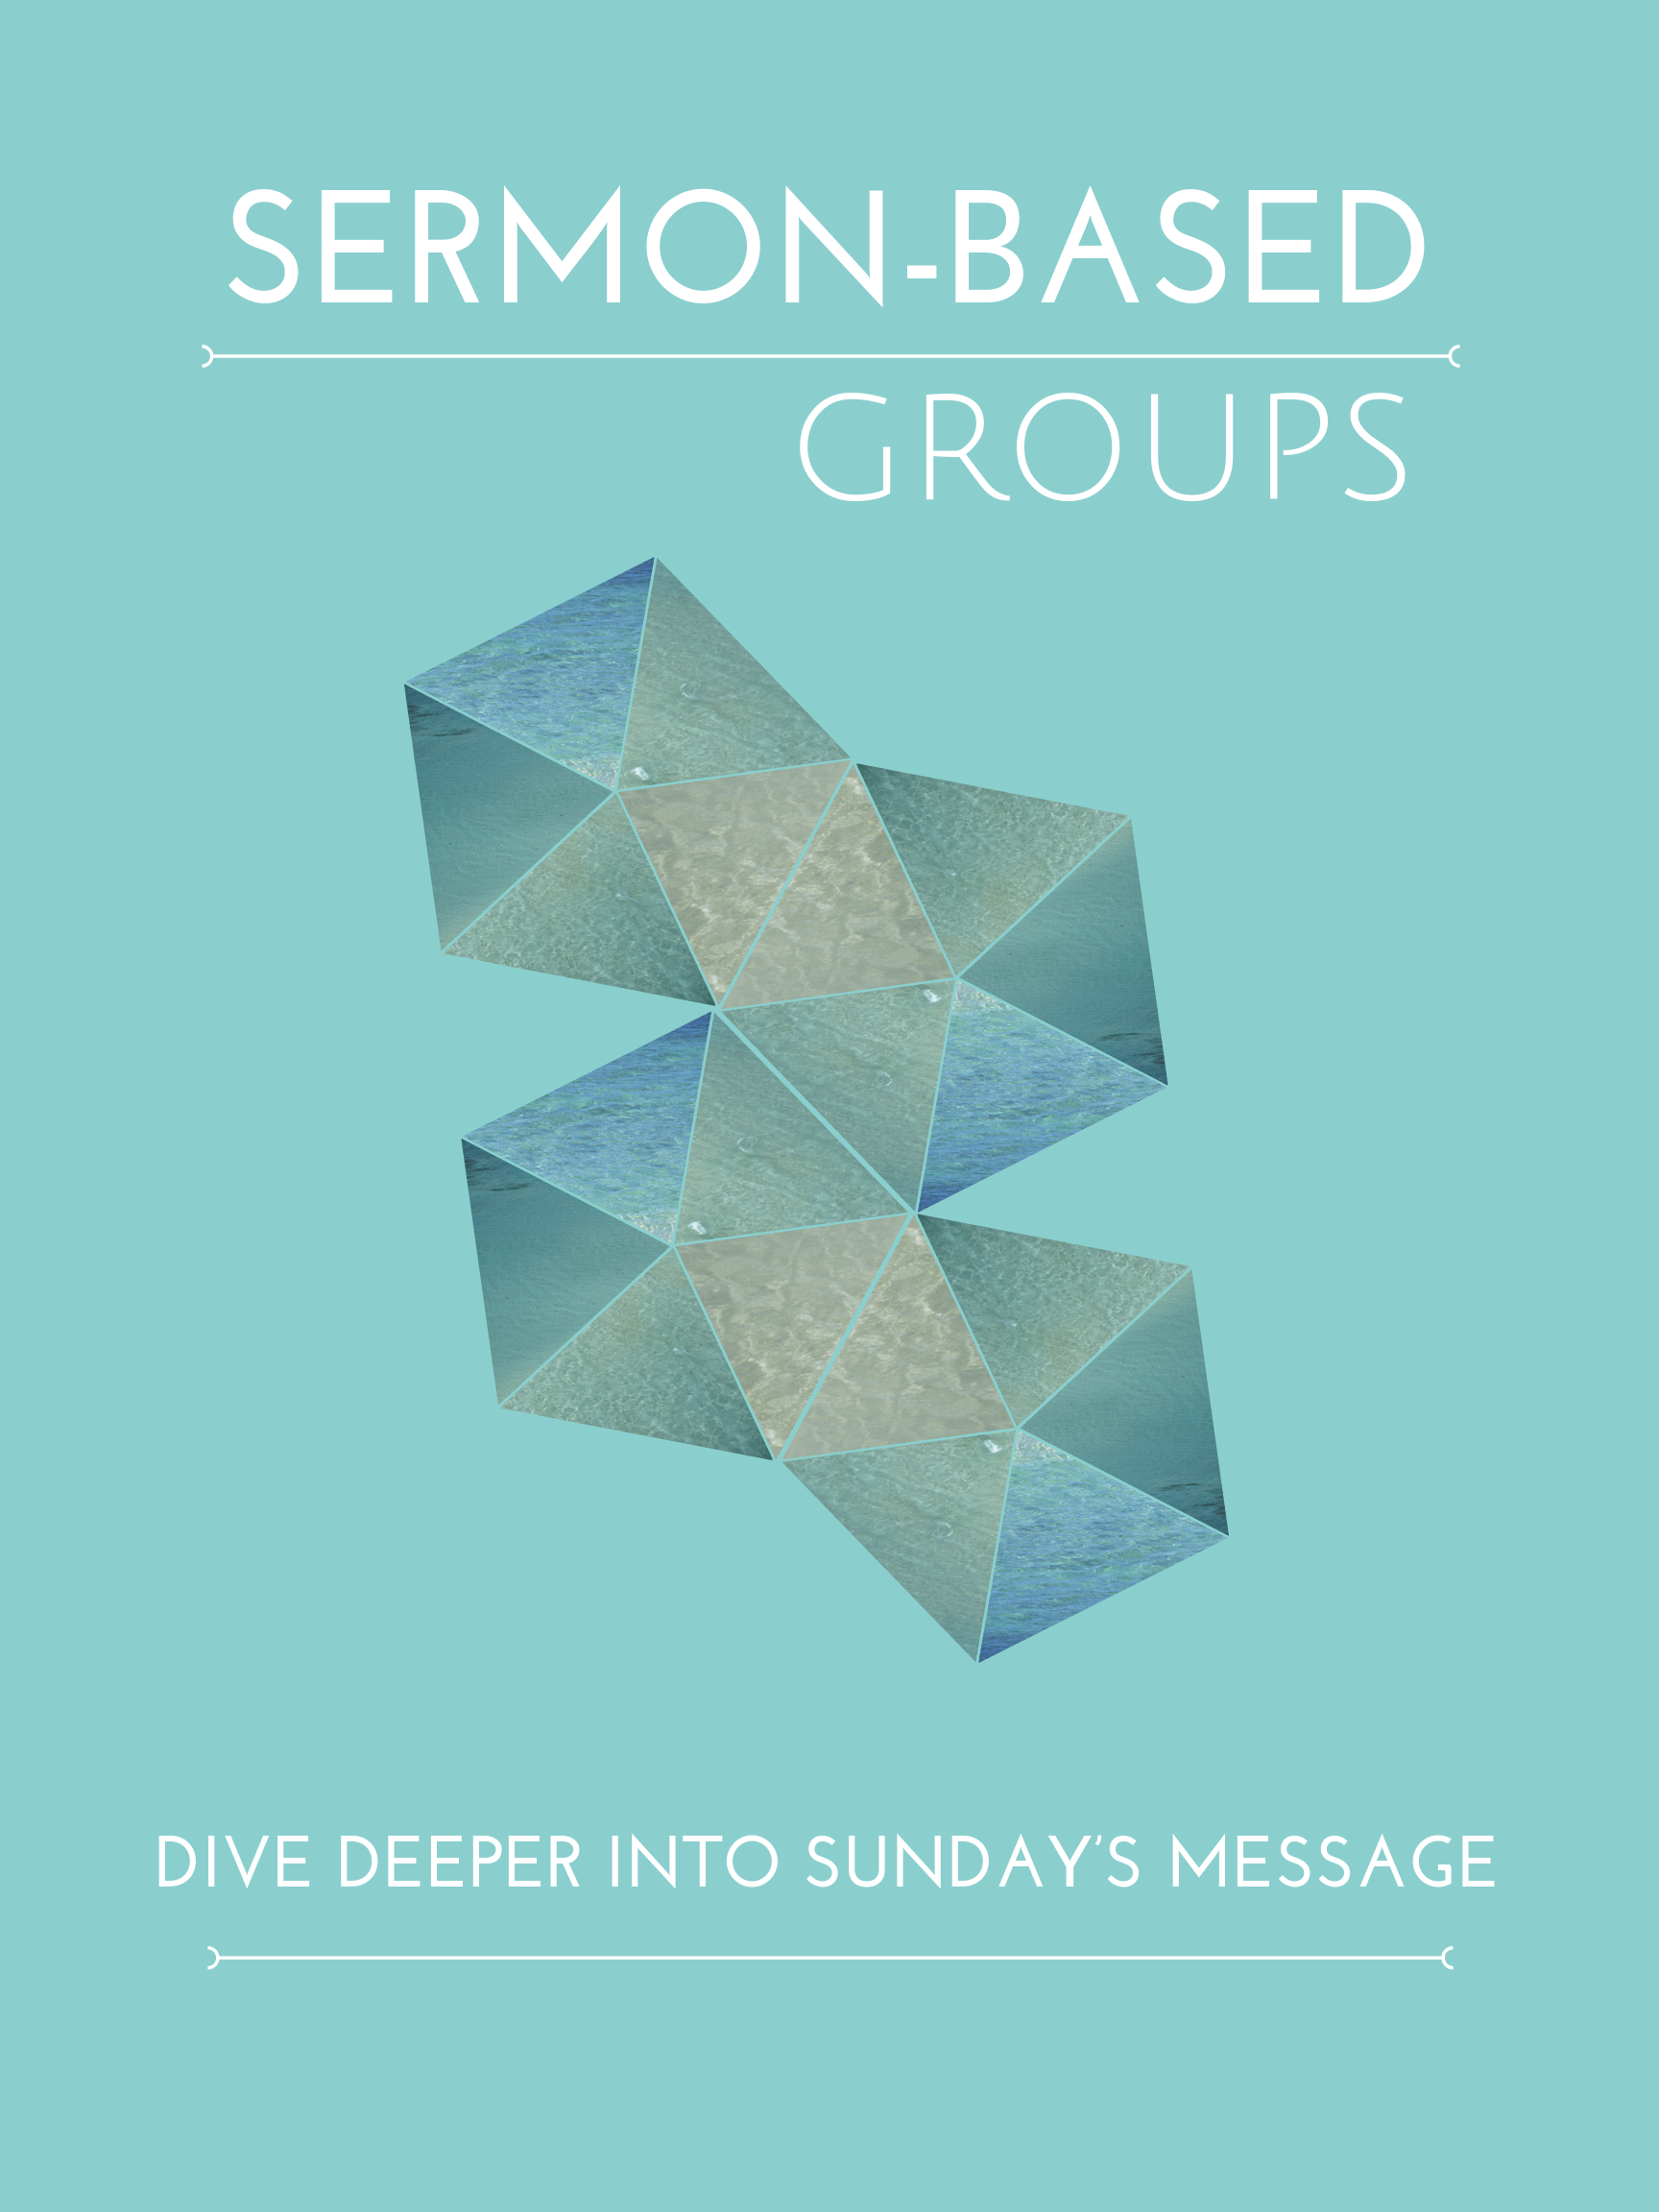 Sermon-based Groups - These groups dive deeper into Sunday's message. Men's, Women's and Coed opportunities.Monday WOMEN'S Group 1:00PM LP Cafe (lower building)Wednesday YOUNG ADULT Group 6:30PM FC (upper building)Wednesday WOMEN'S Group 7:00PM HOMEThursday MEN'S Group 6:30PM FC (upper building)Sunday COED Group 11:45AM LP Cafe (lower building)